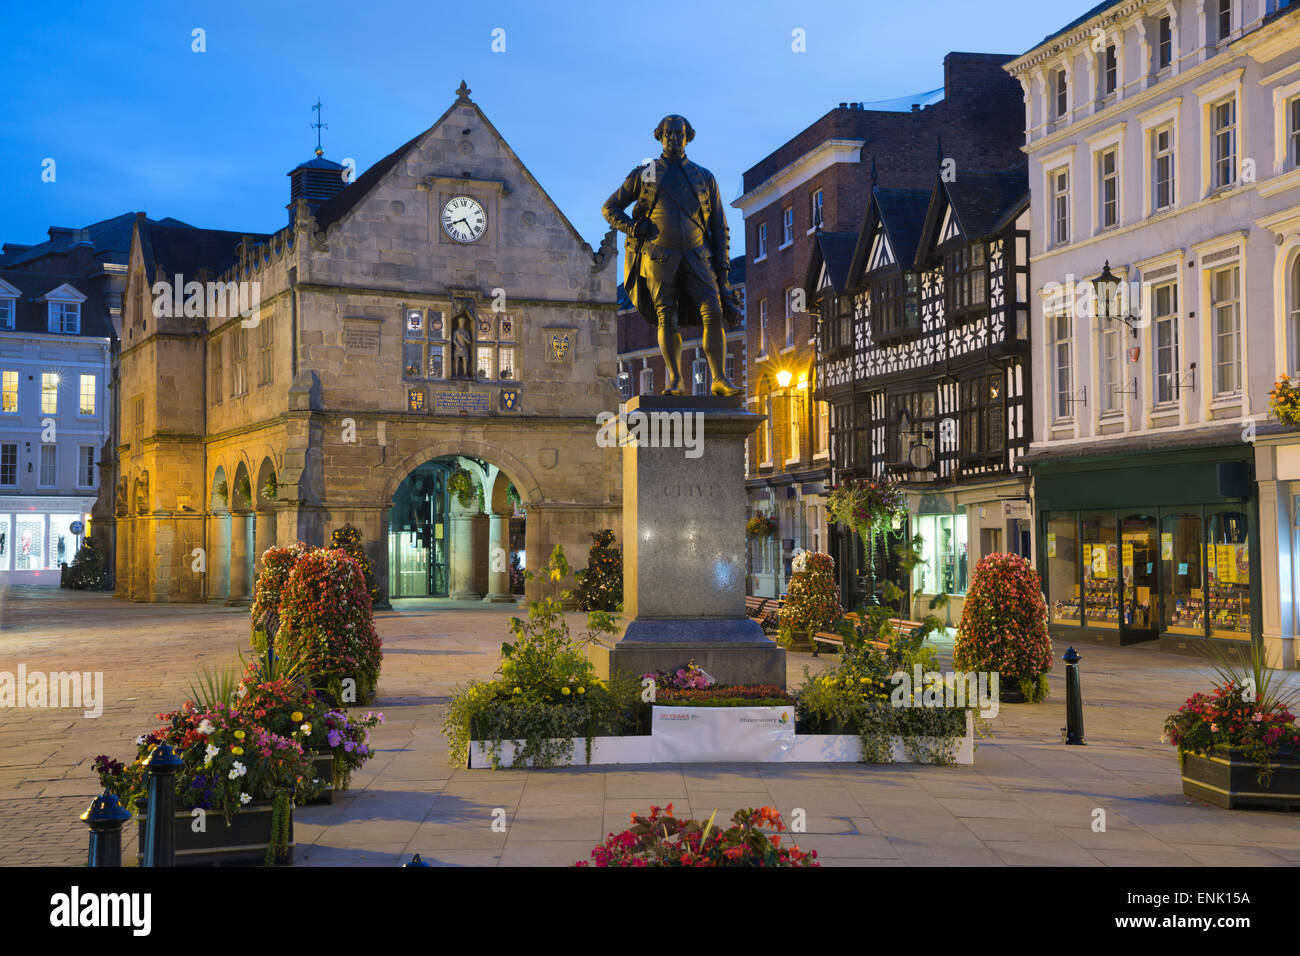 The Old Market Hall and Robert Clive statue, The Square, Shrewsbury, Shropshire, England, United Kingdom, Europe - Stock Image